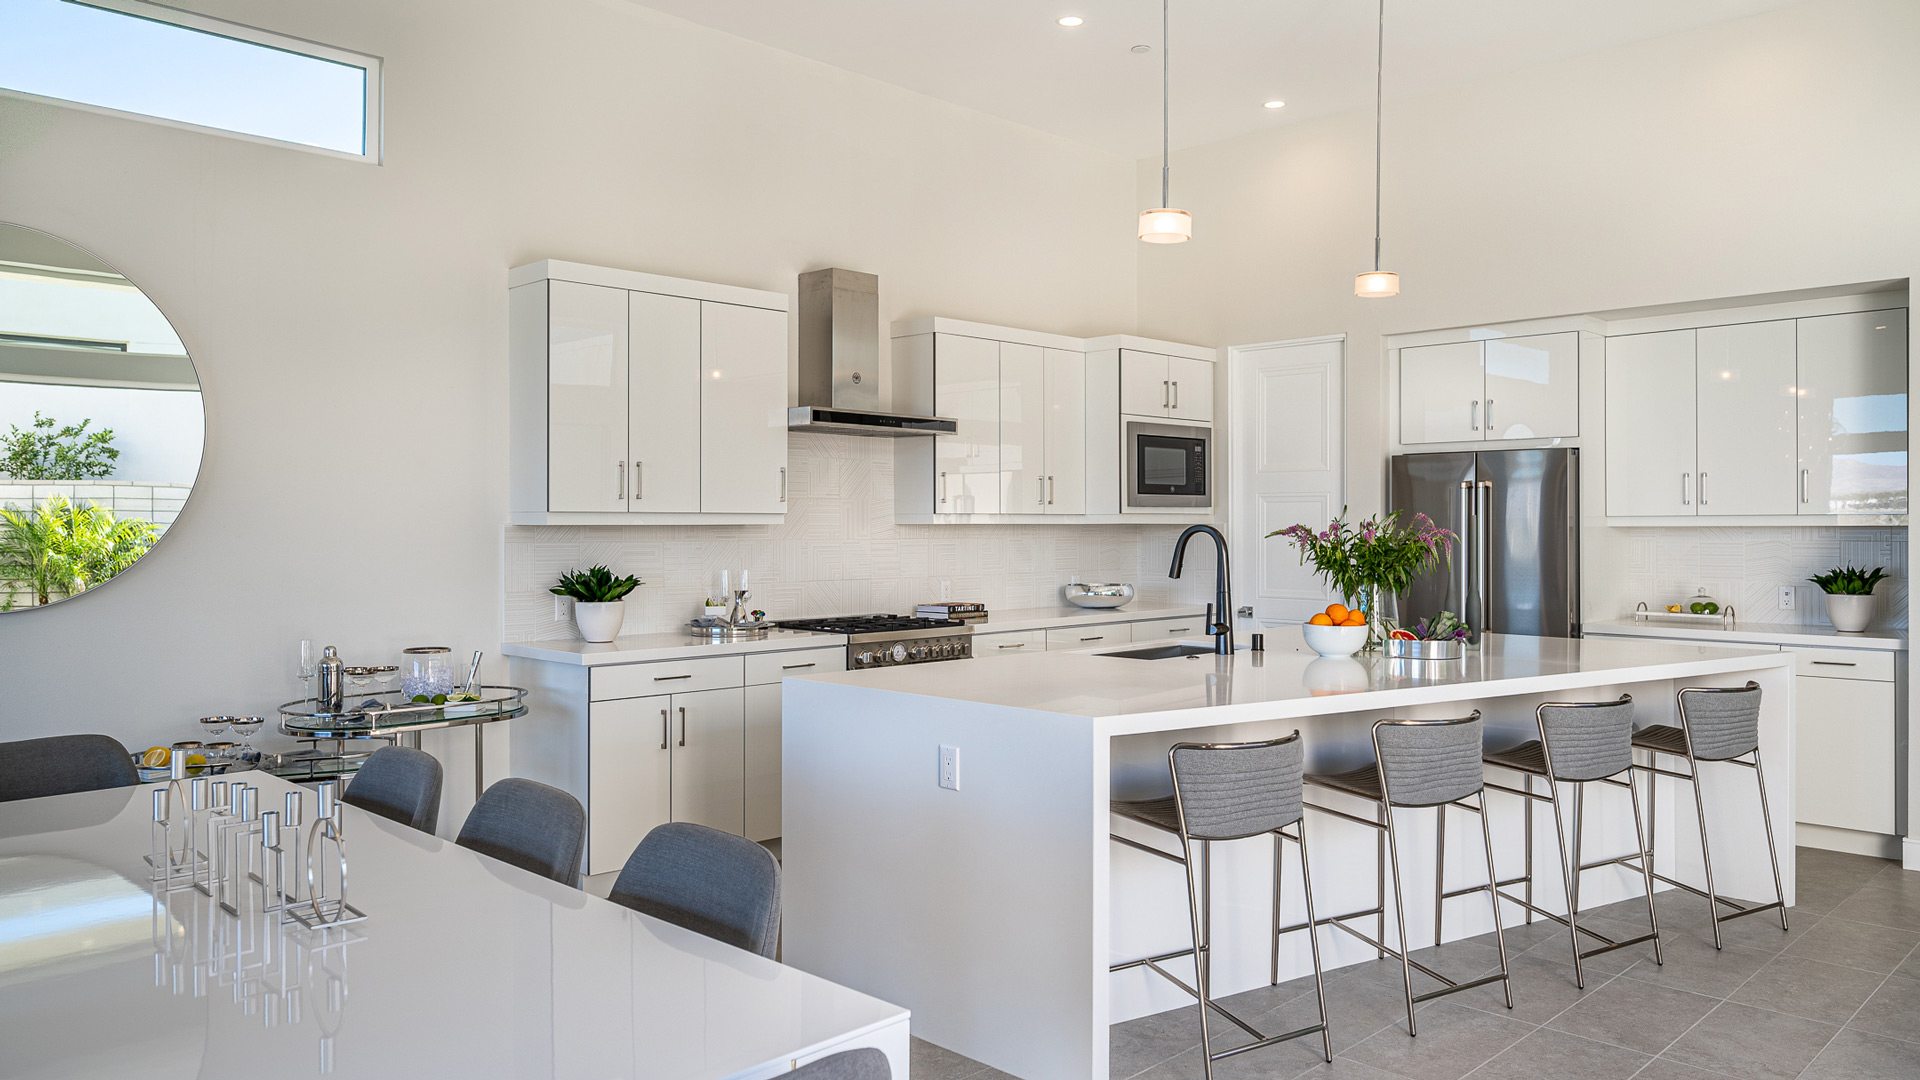 kitchen and dining of residence 2 aura atmiralon palm springs